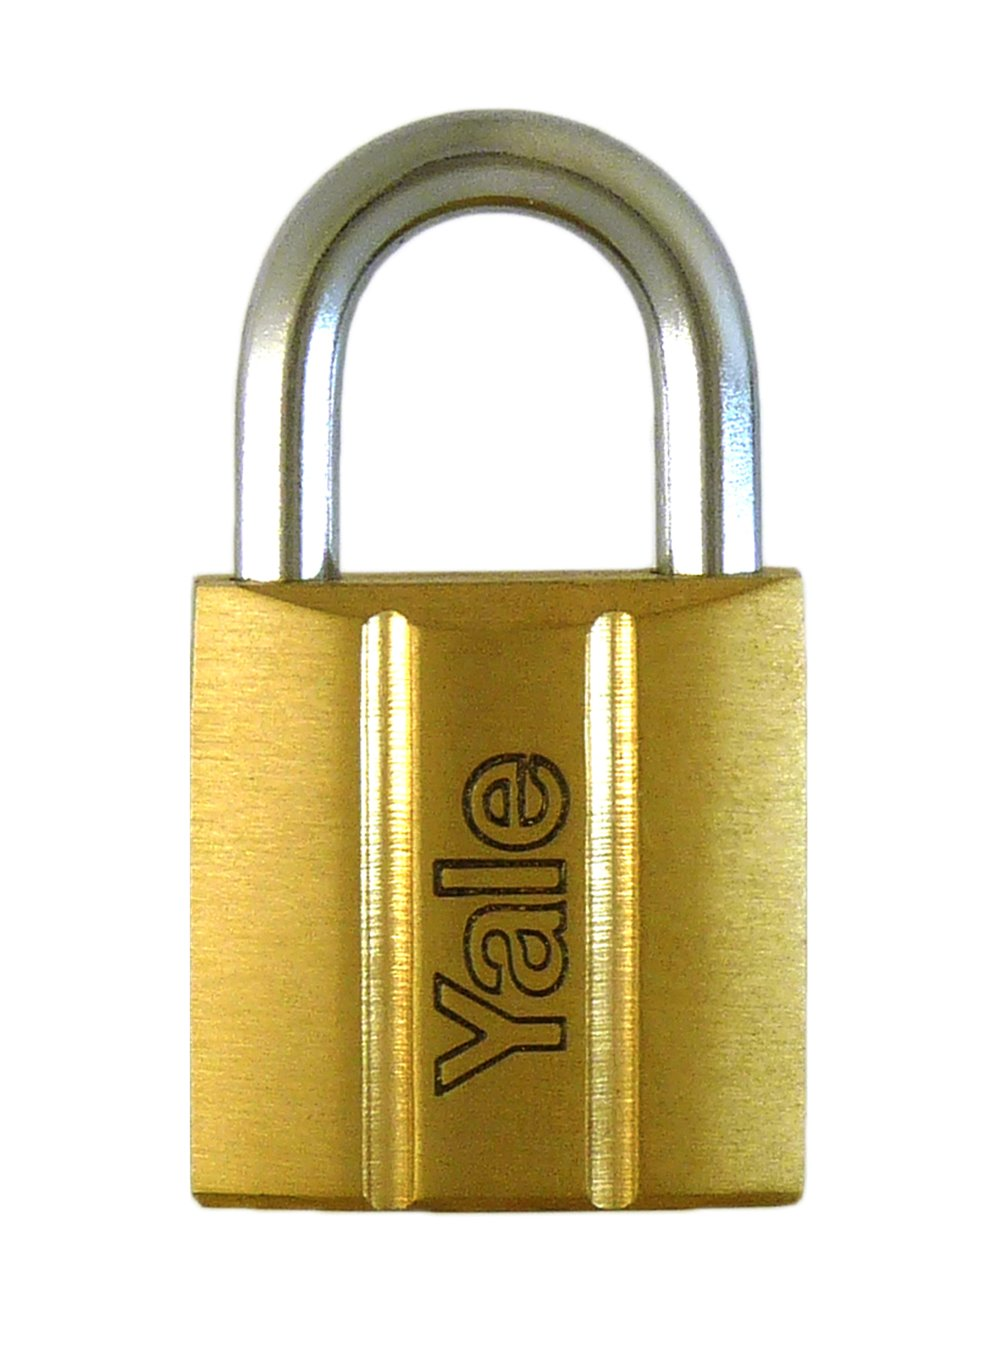 Y140/25 - Yale 140 Series Brass Padlock 25mm